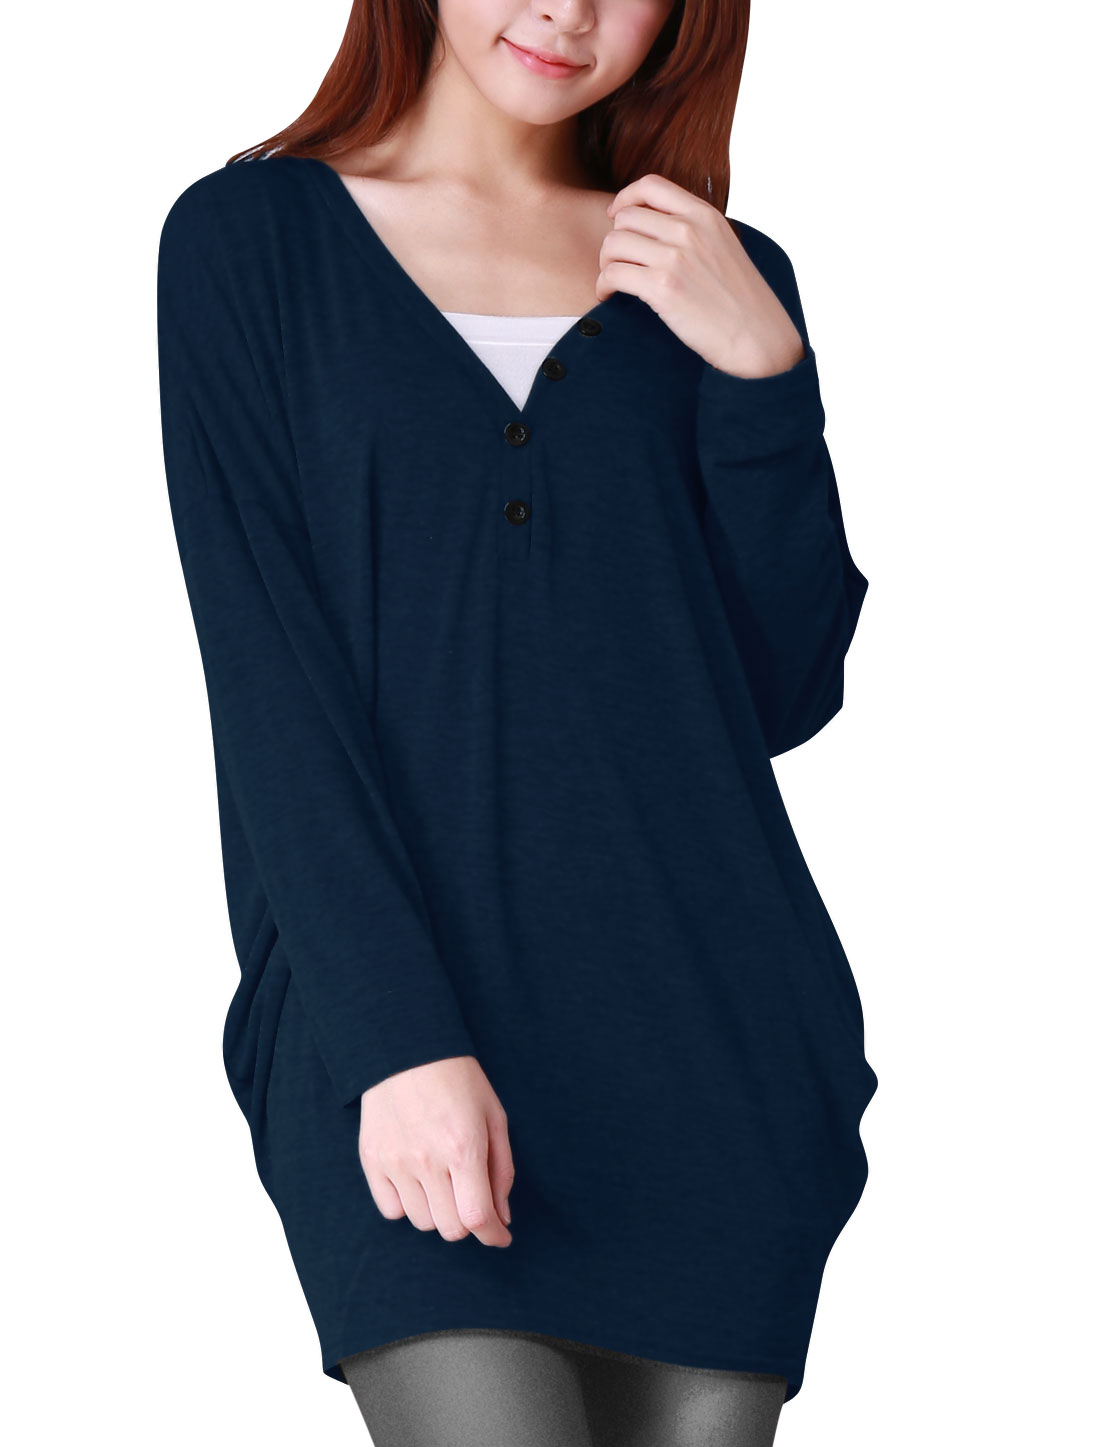 Lady Long Dolman Sleeves Buttons Decor Front Blouse Dark Blue XL